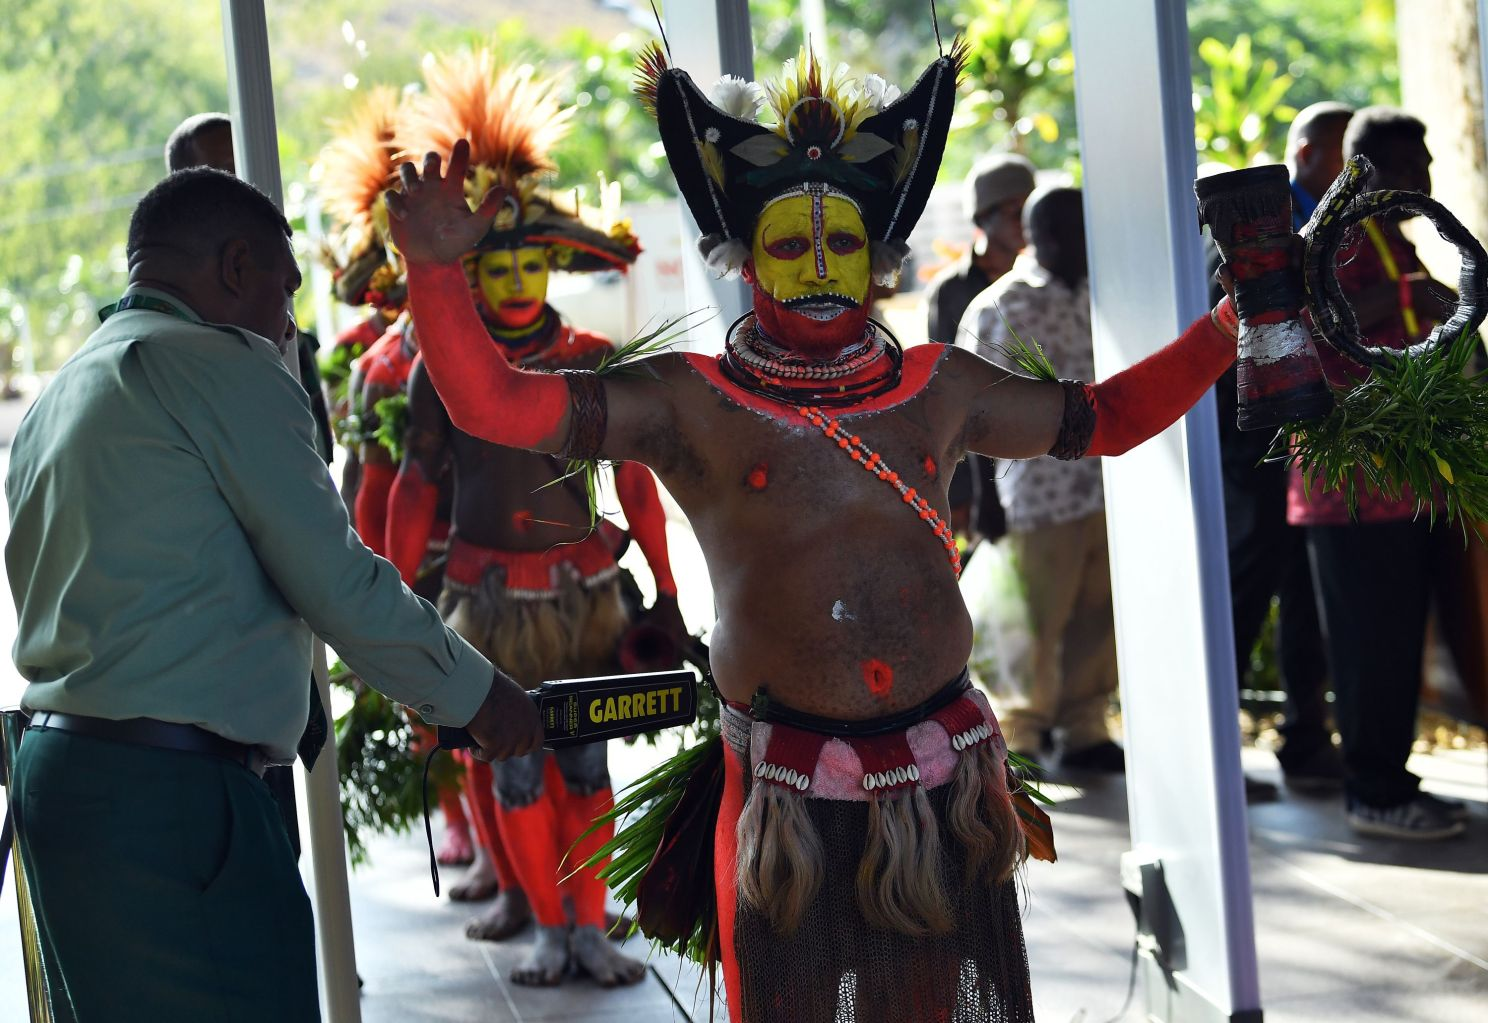 Papuan villagers in traditional costume go through the security screening at Parliament House in Port Moresby ahead of Asia-Pacific Economic Cooperation (APEC) Summit on on Nov. 16. SAEED KHAN/AFP/Getty Images